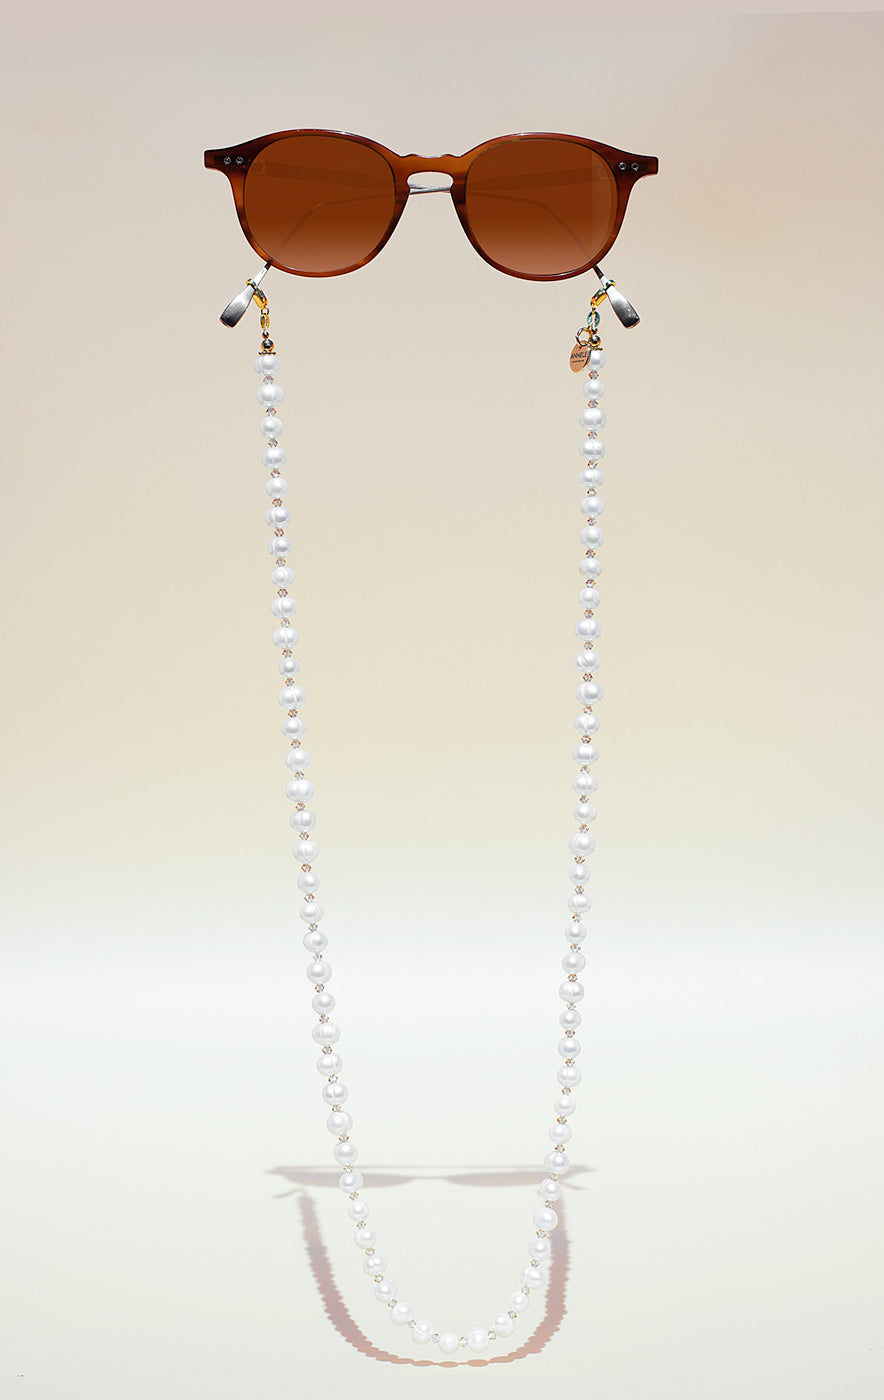 Snow White Sunglasses Chain